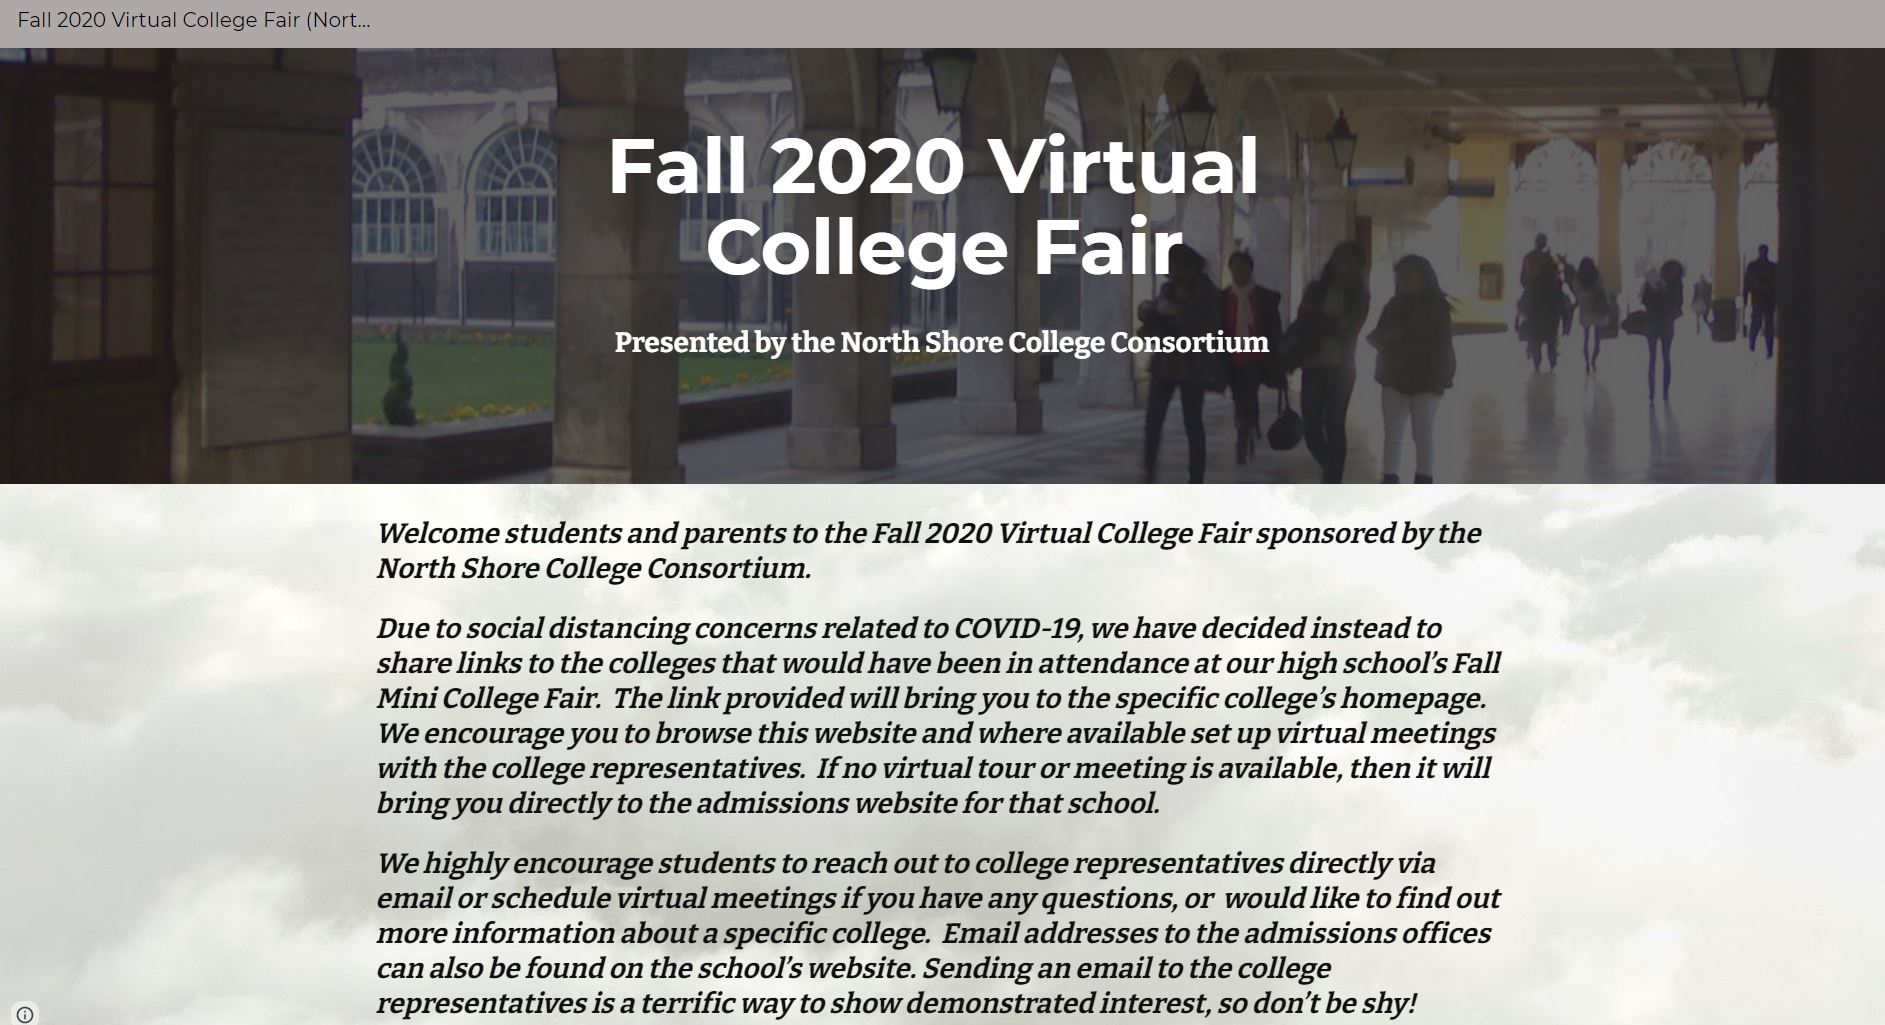 Fall 2020 Virtual College Fair For Hills East And West Students